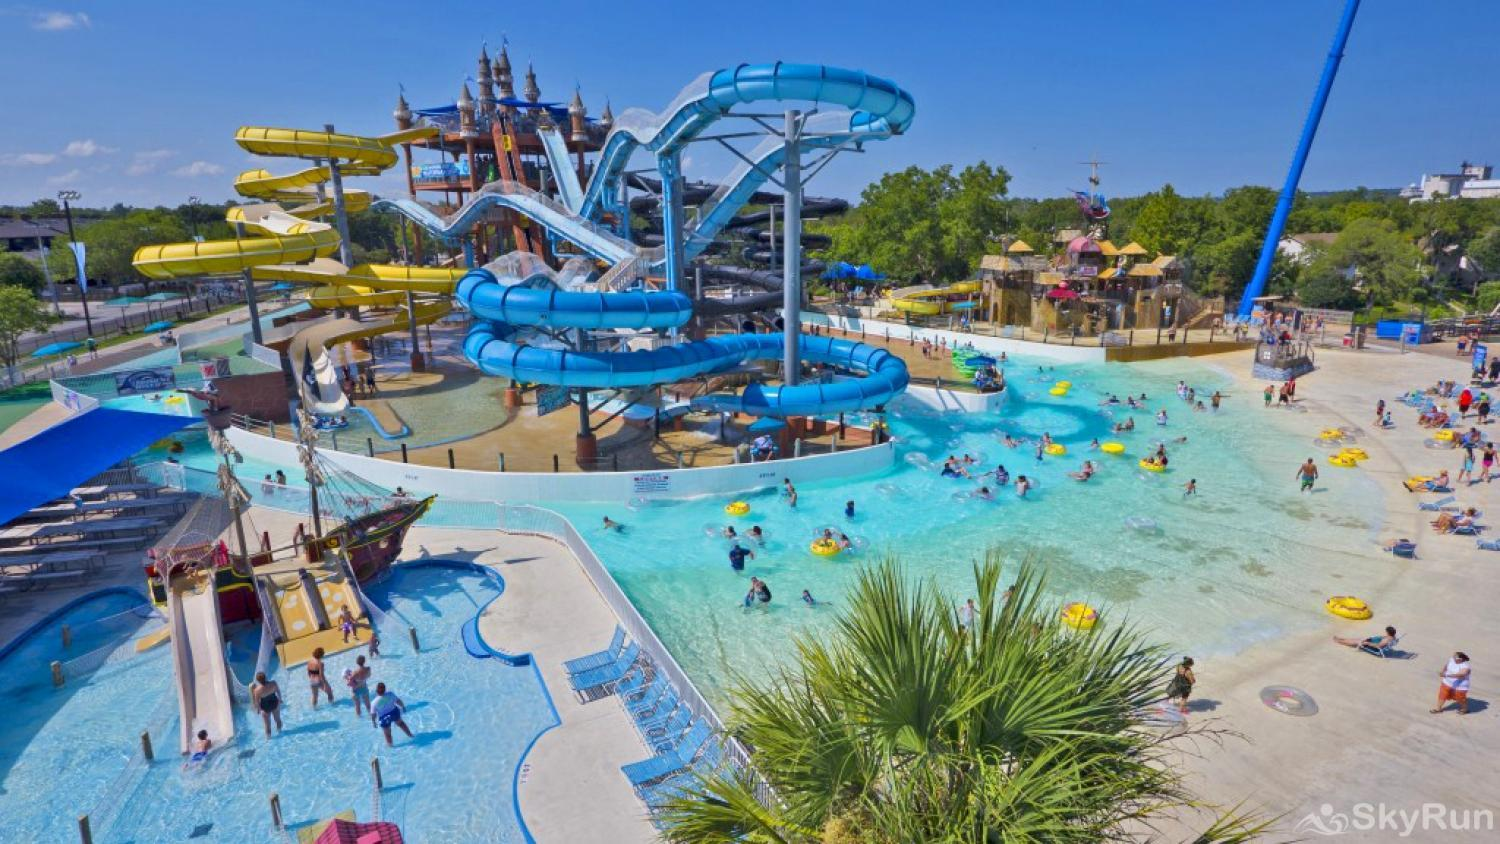 WATERWHEEL ESCAPE CONDO Schlitterbahn Waterpark, 1 Mile Away